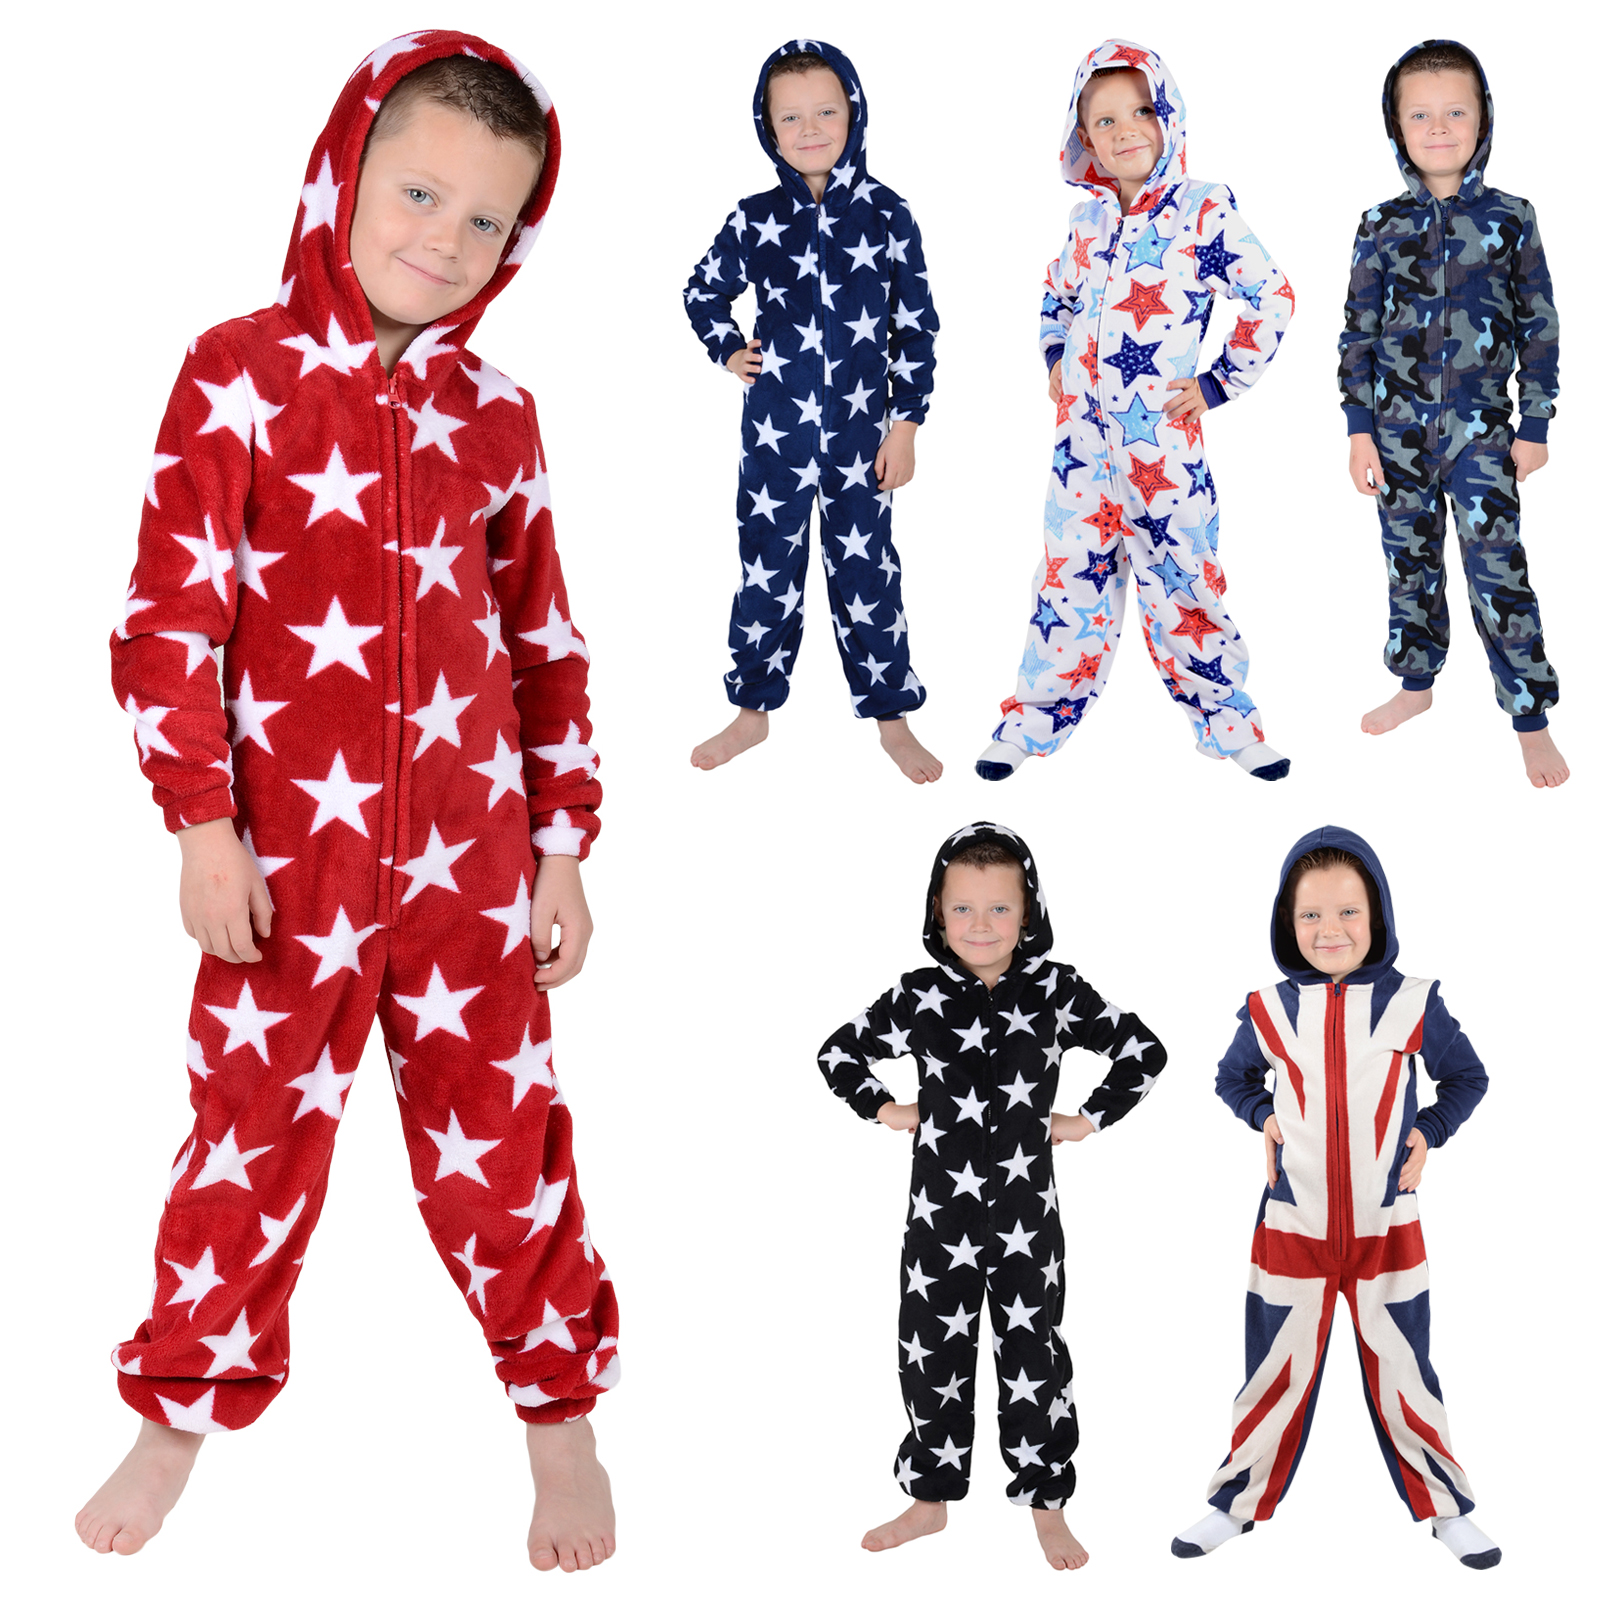 Big Feet Pjs Kids Green Camo Fleece Boys Footed Pajamas Onesie Sleeper $ 29 out of 5 stars LEGO. Big Boys' Blanket Sleeper Good Cop. from $ 9 95 Prime. out of 5 stars Simple Joys by Carter's. Boys' 3-Pack Loose Fit Flame Resistant Fleece Footed Pajamas $ .